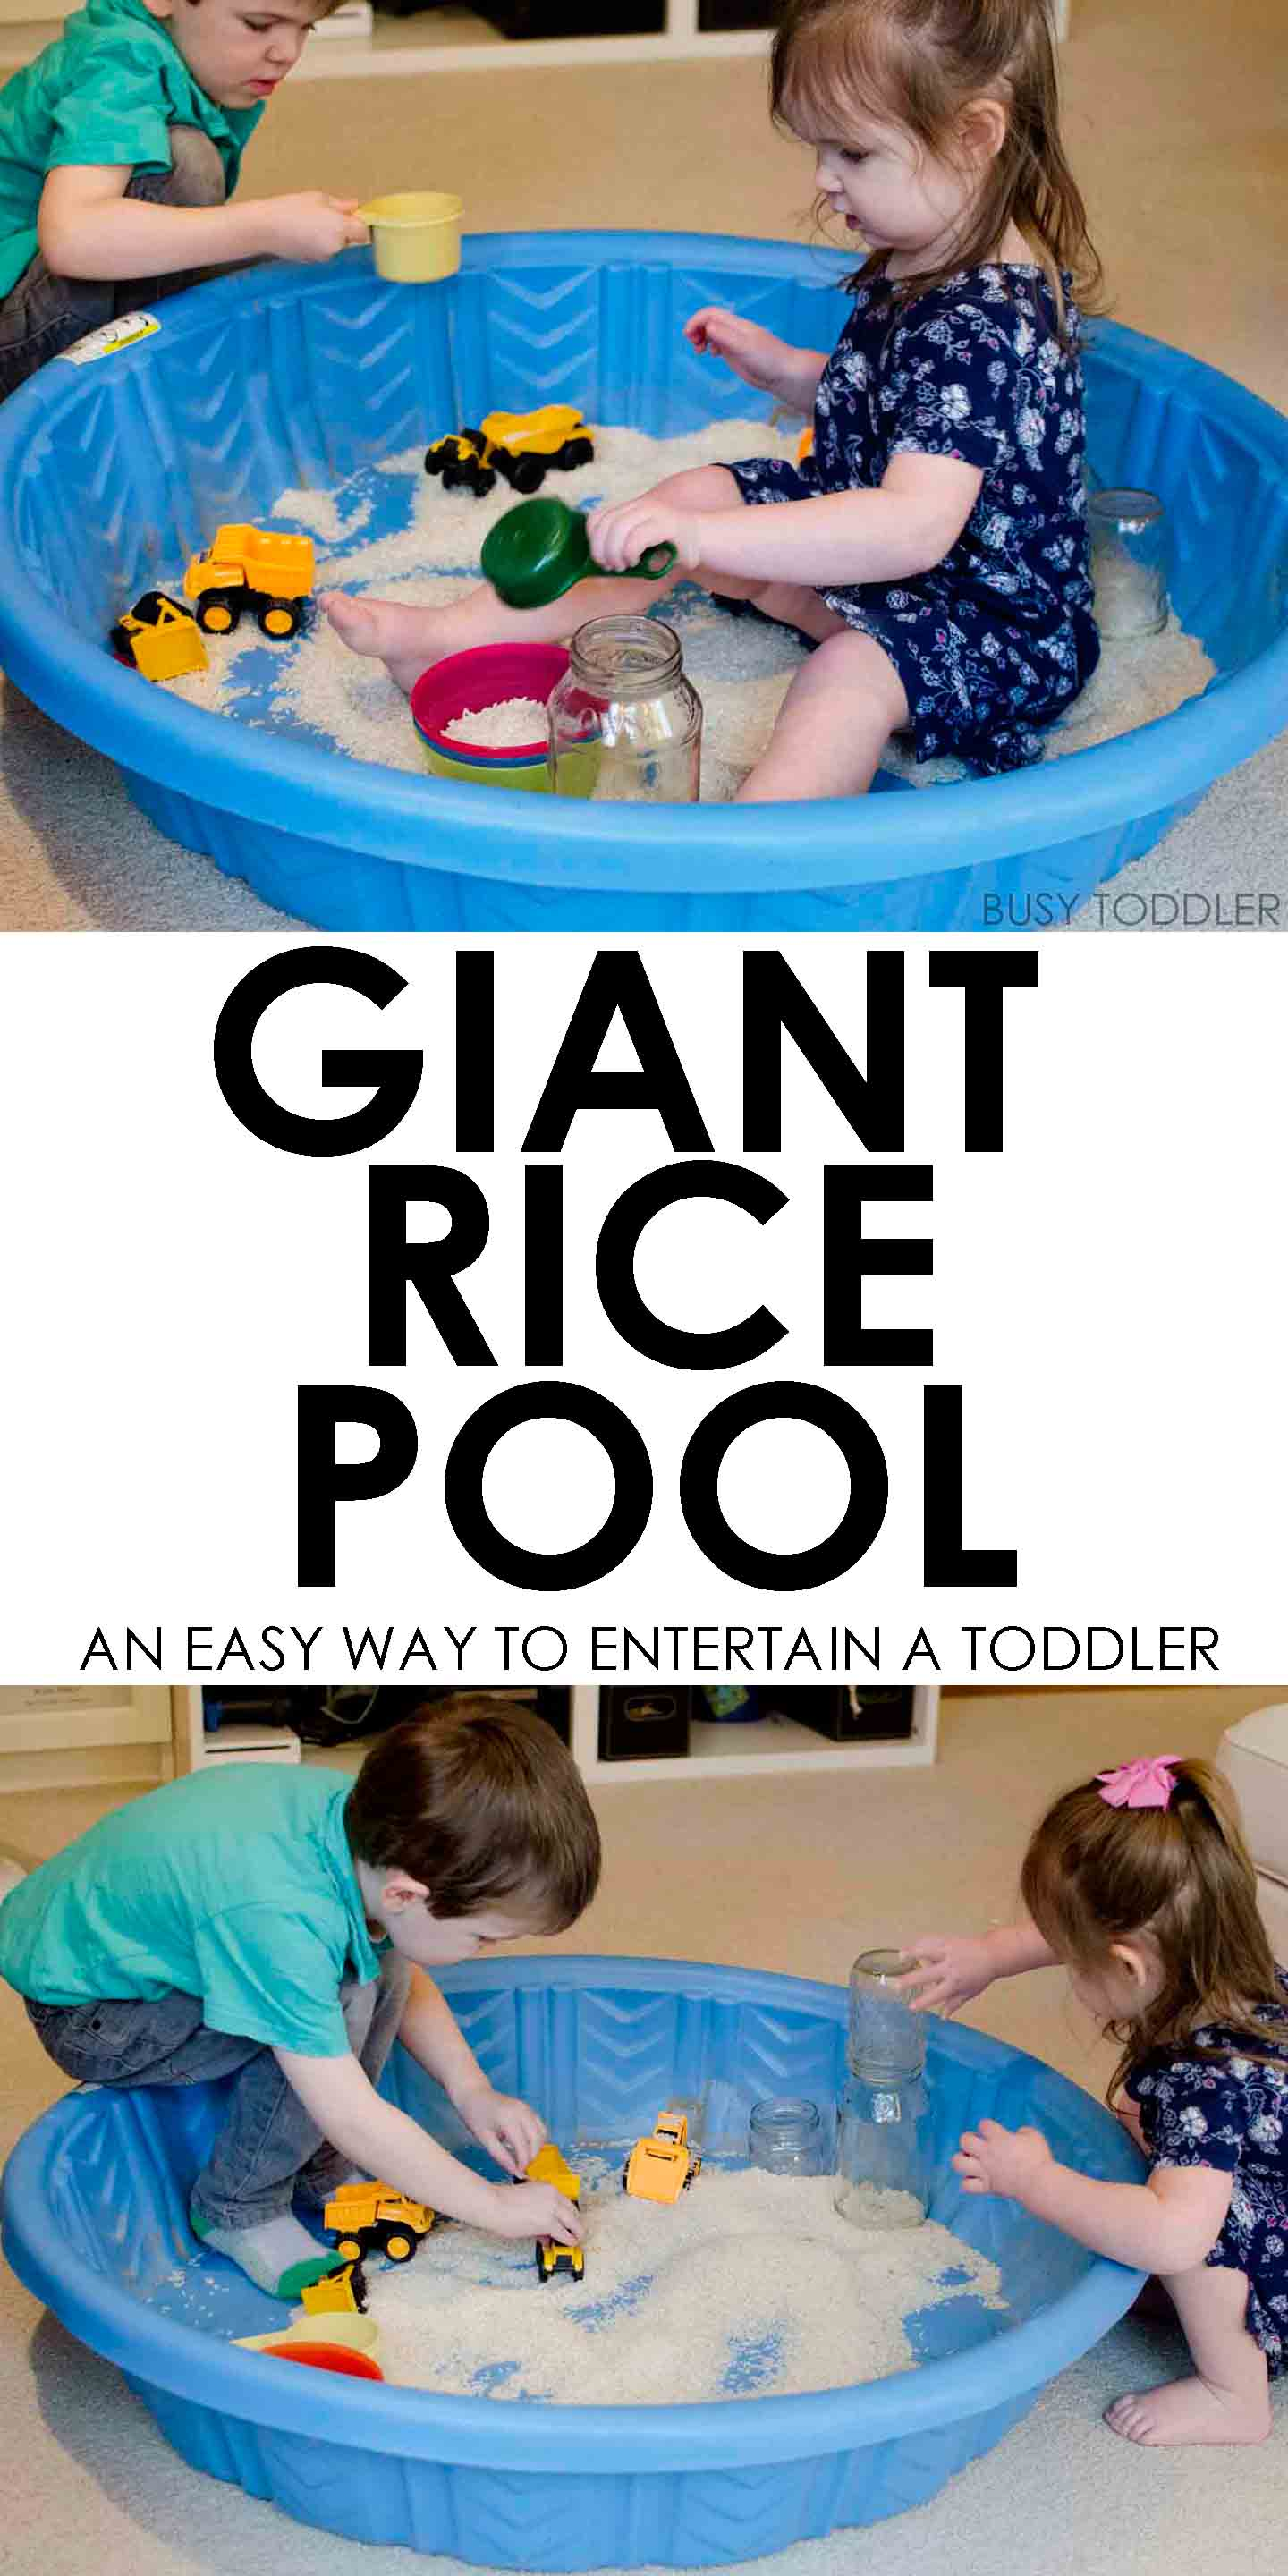 GIANT RICE POOL: What an awesome indoor toddler activity! A fun sensory idea for toddlers. A quick and easy way to entertain toddlers.